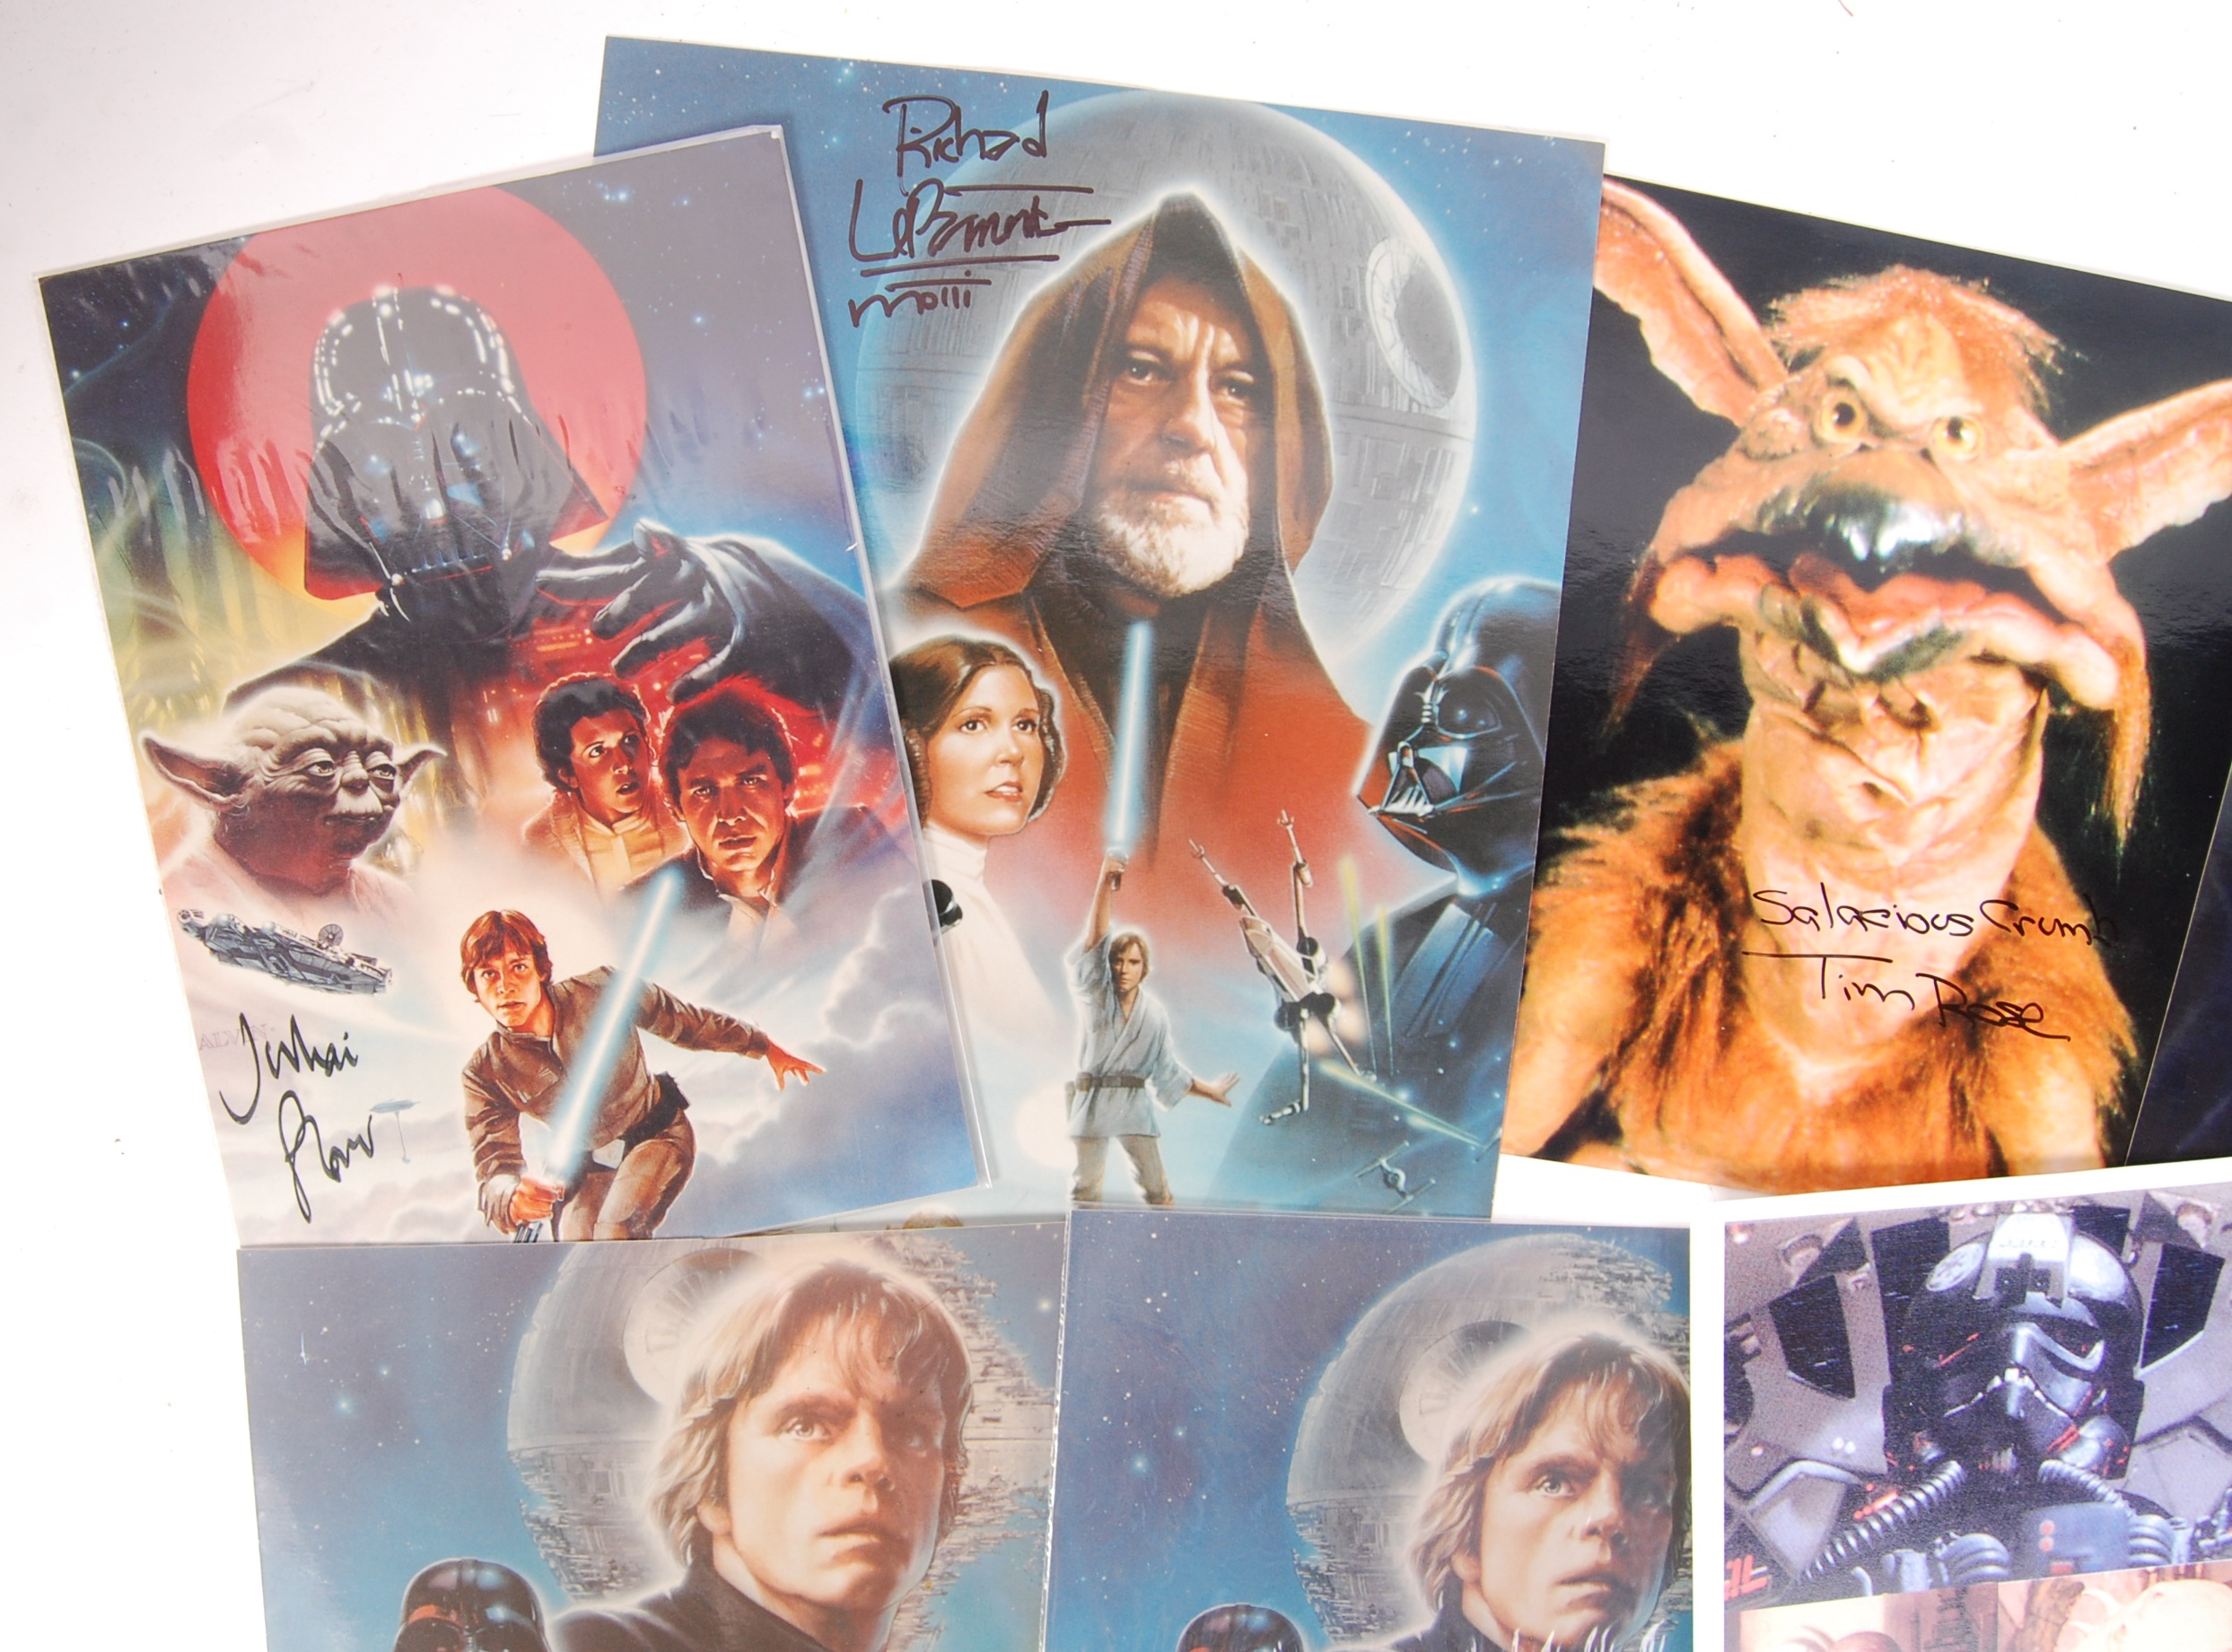 STAR WARS - SELECTION OF AUTOGRAPHED PHOTOGRAPHS - Image 2 of 4